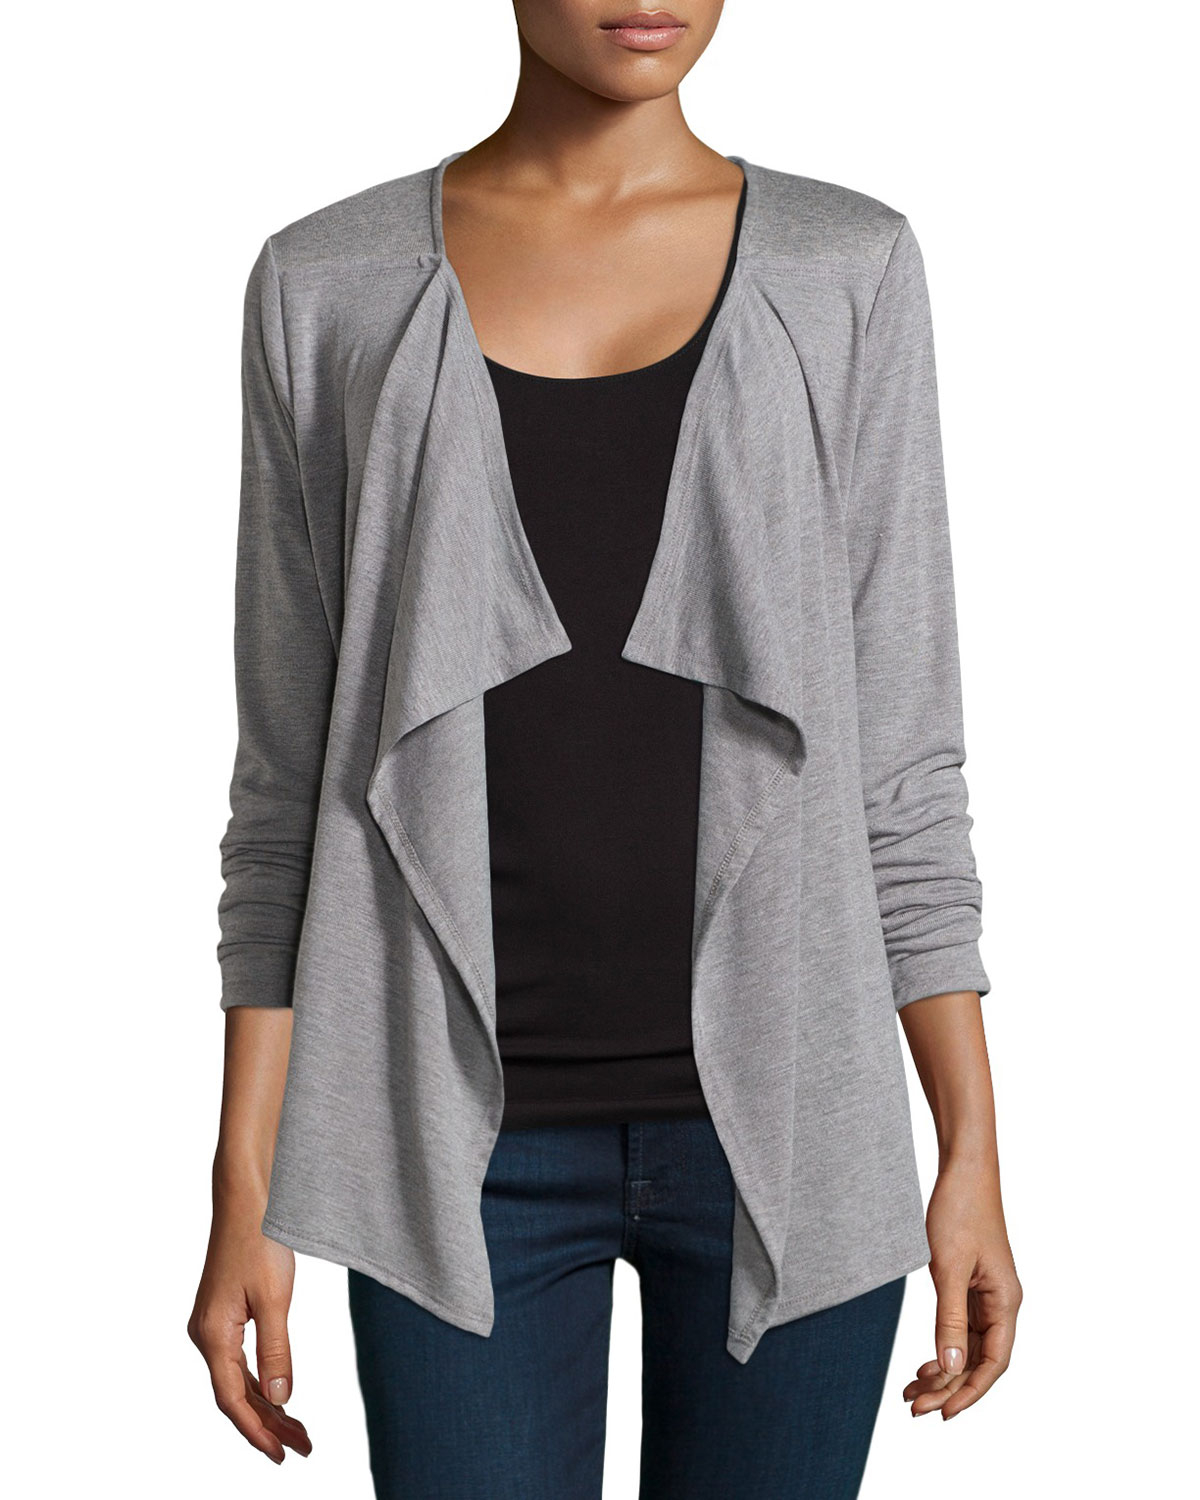 Neiman marcus Gathered-back Draped Cardigan in Gray | Lyst